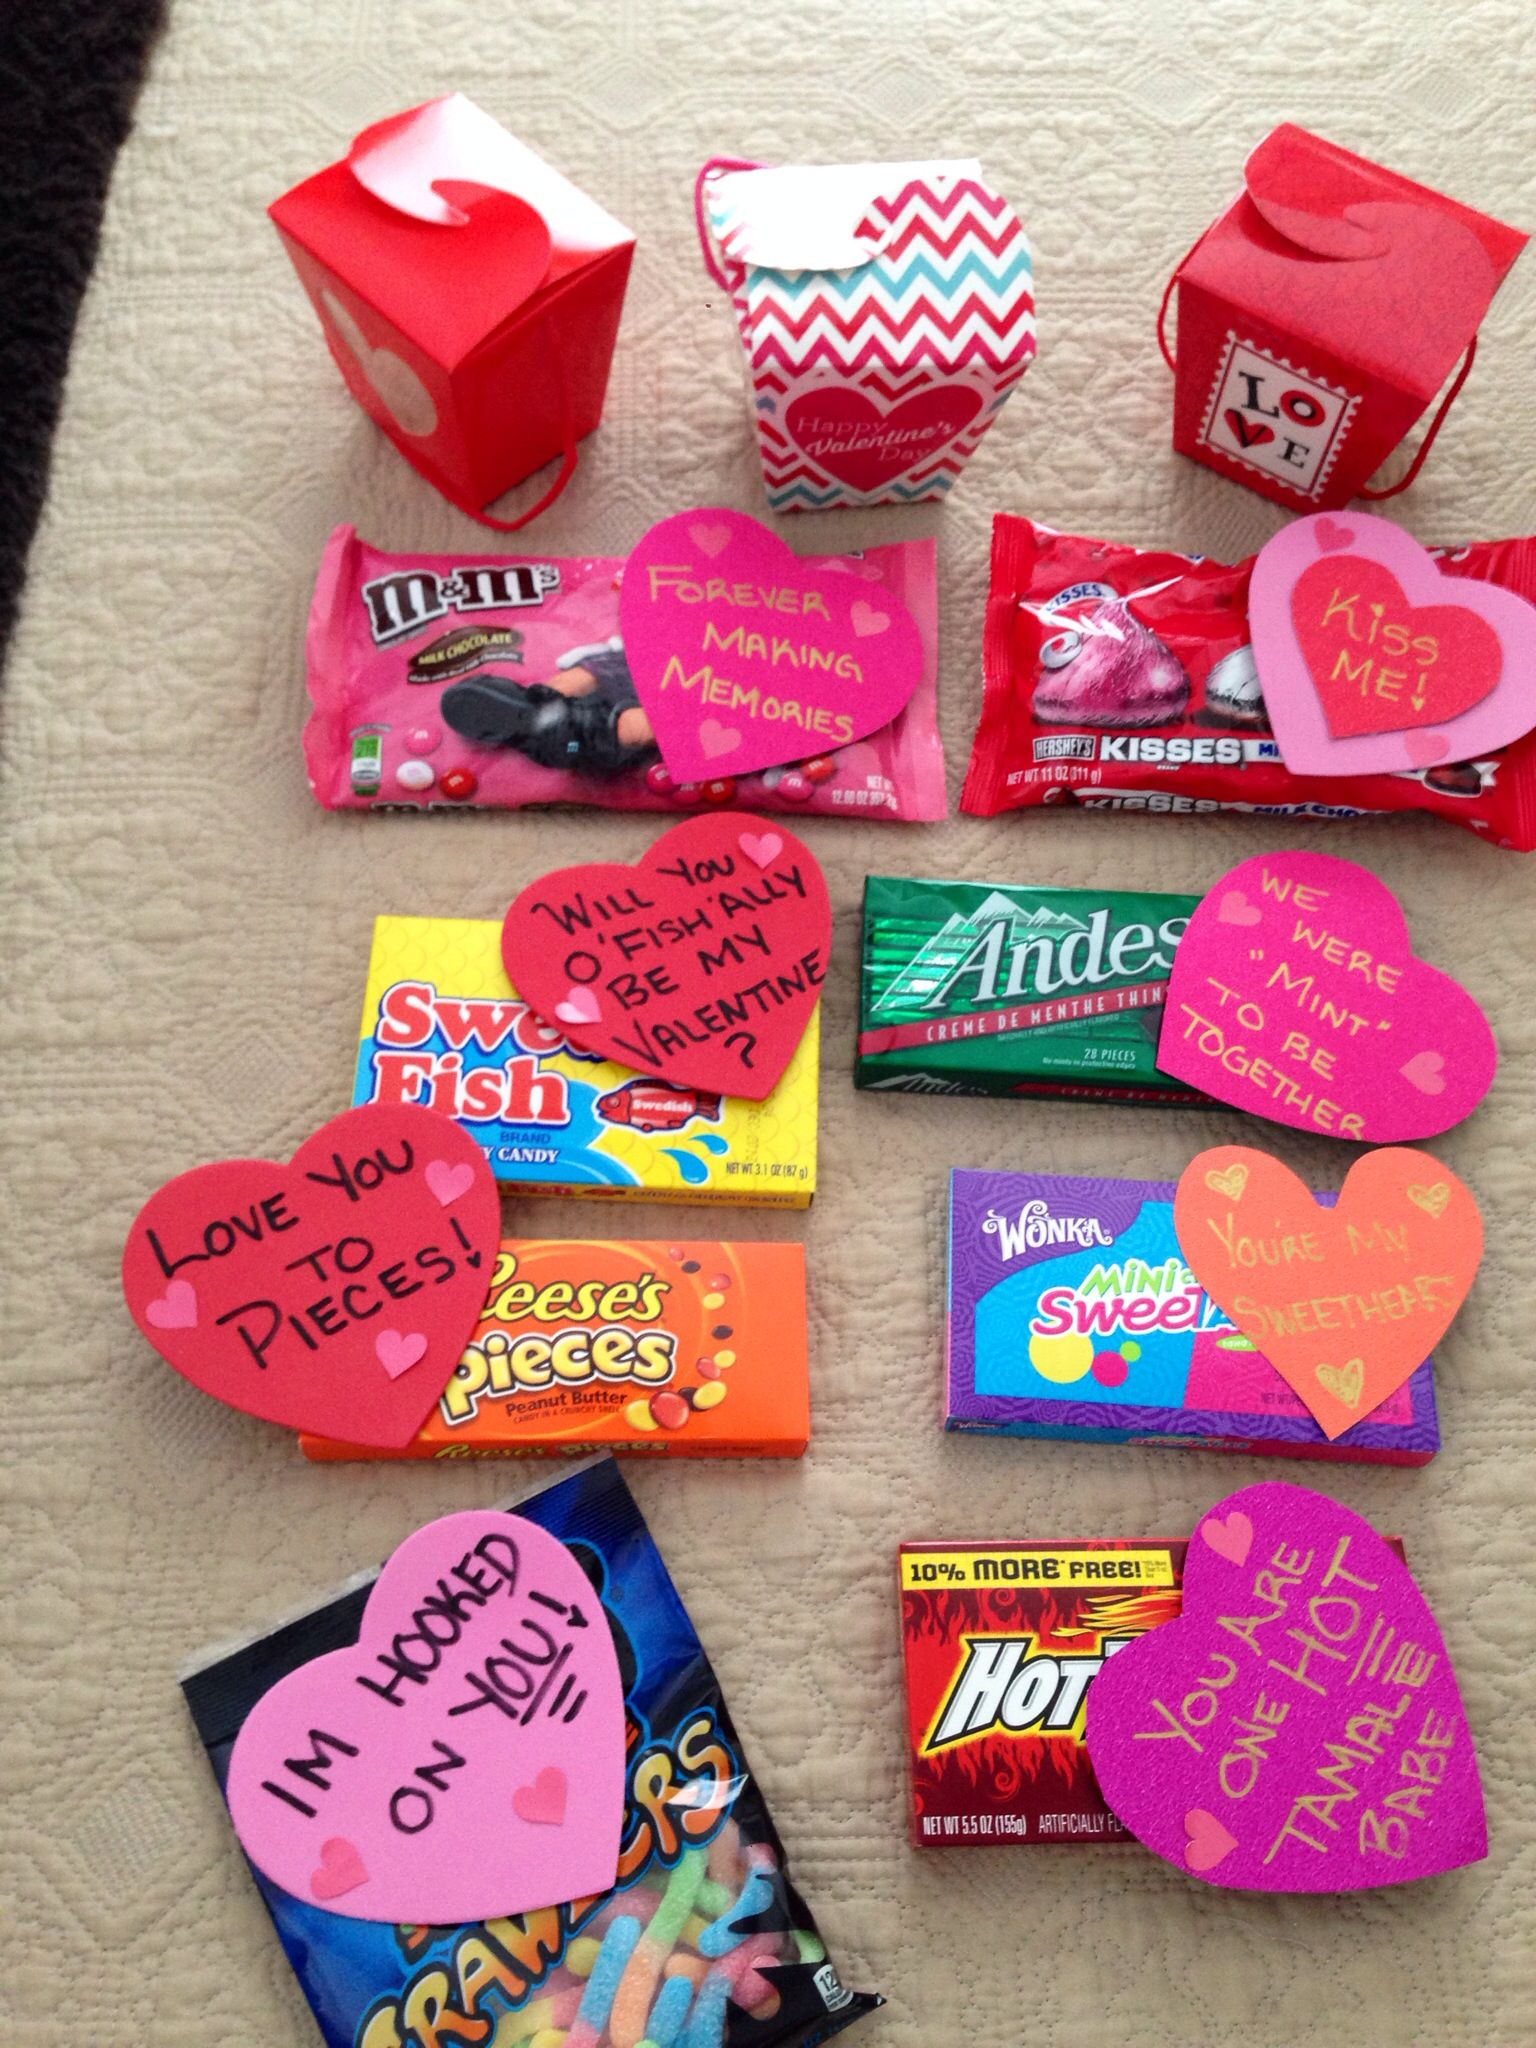 Valentines Day Care Package Valentines Day Care Package Diy Valentines Gifts Valentines Day Package